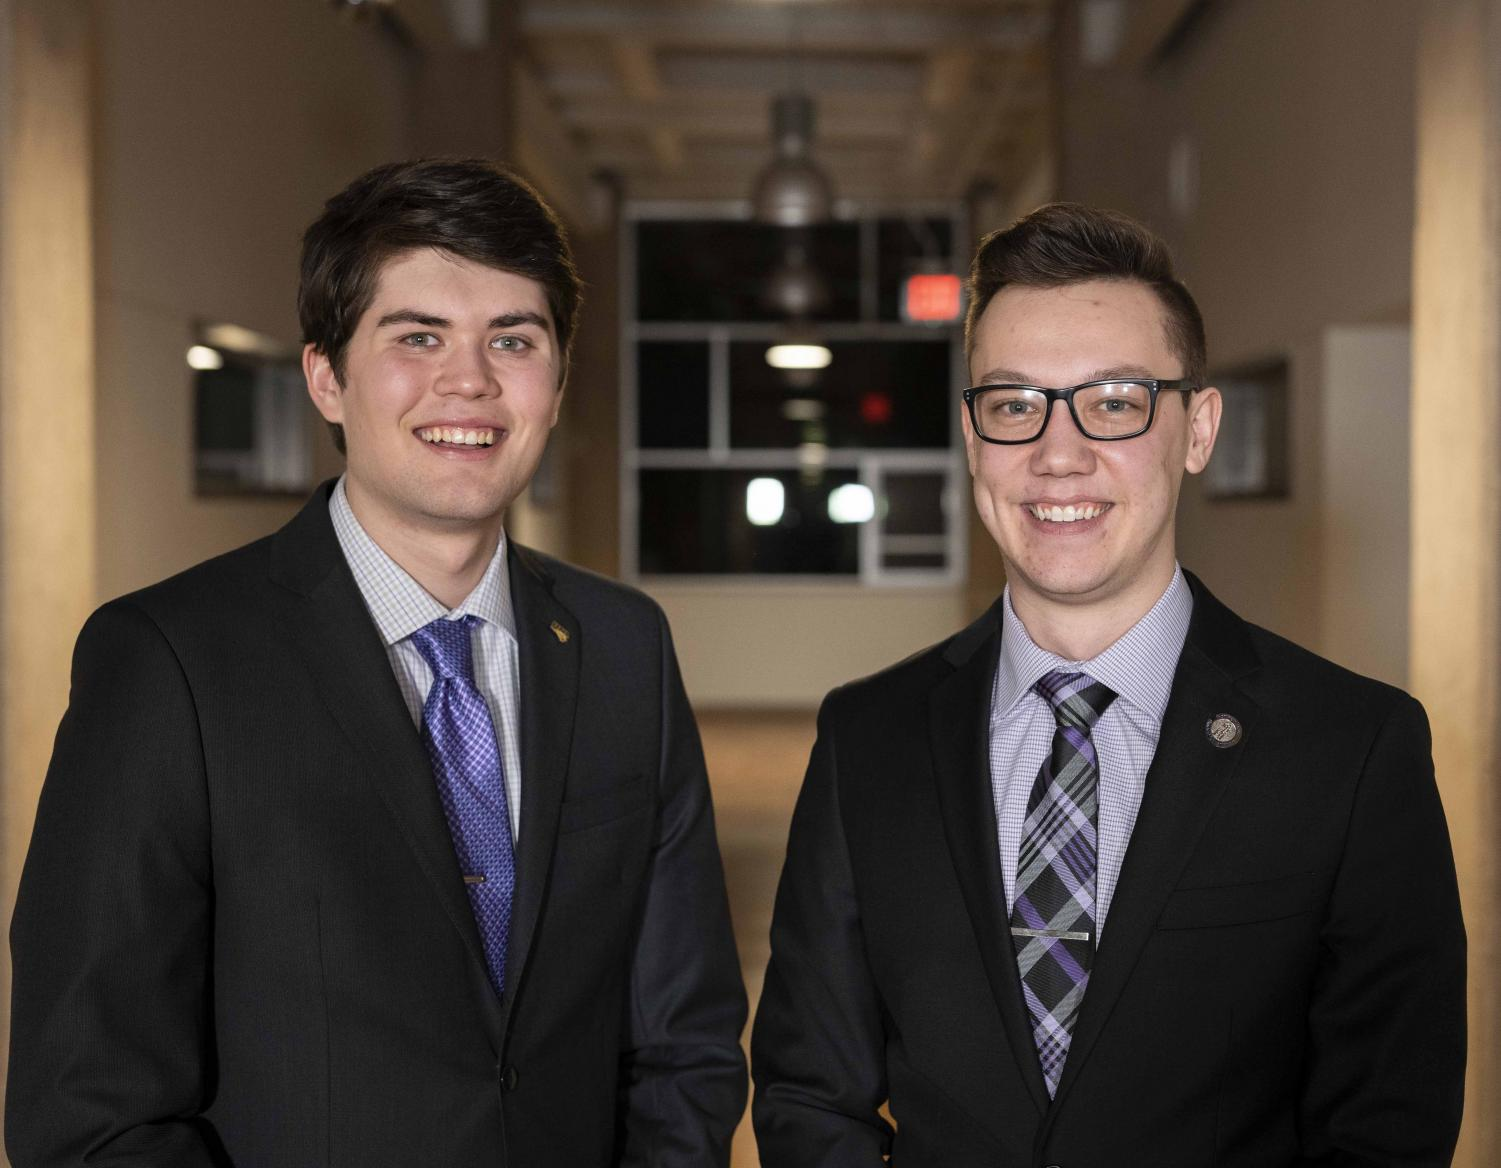 Jacob Levang (pictured left) and Jacob Stites (right) announced their candidacy for student body president and vice president on Monday, Feb. 11, 2019. Elections will take place on Feb. 26 and Feb. 27.